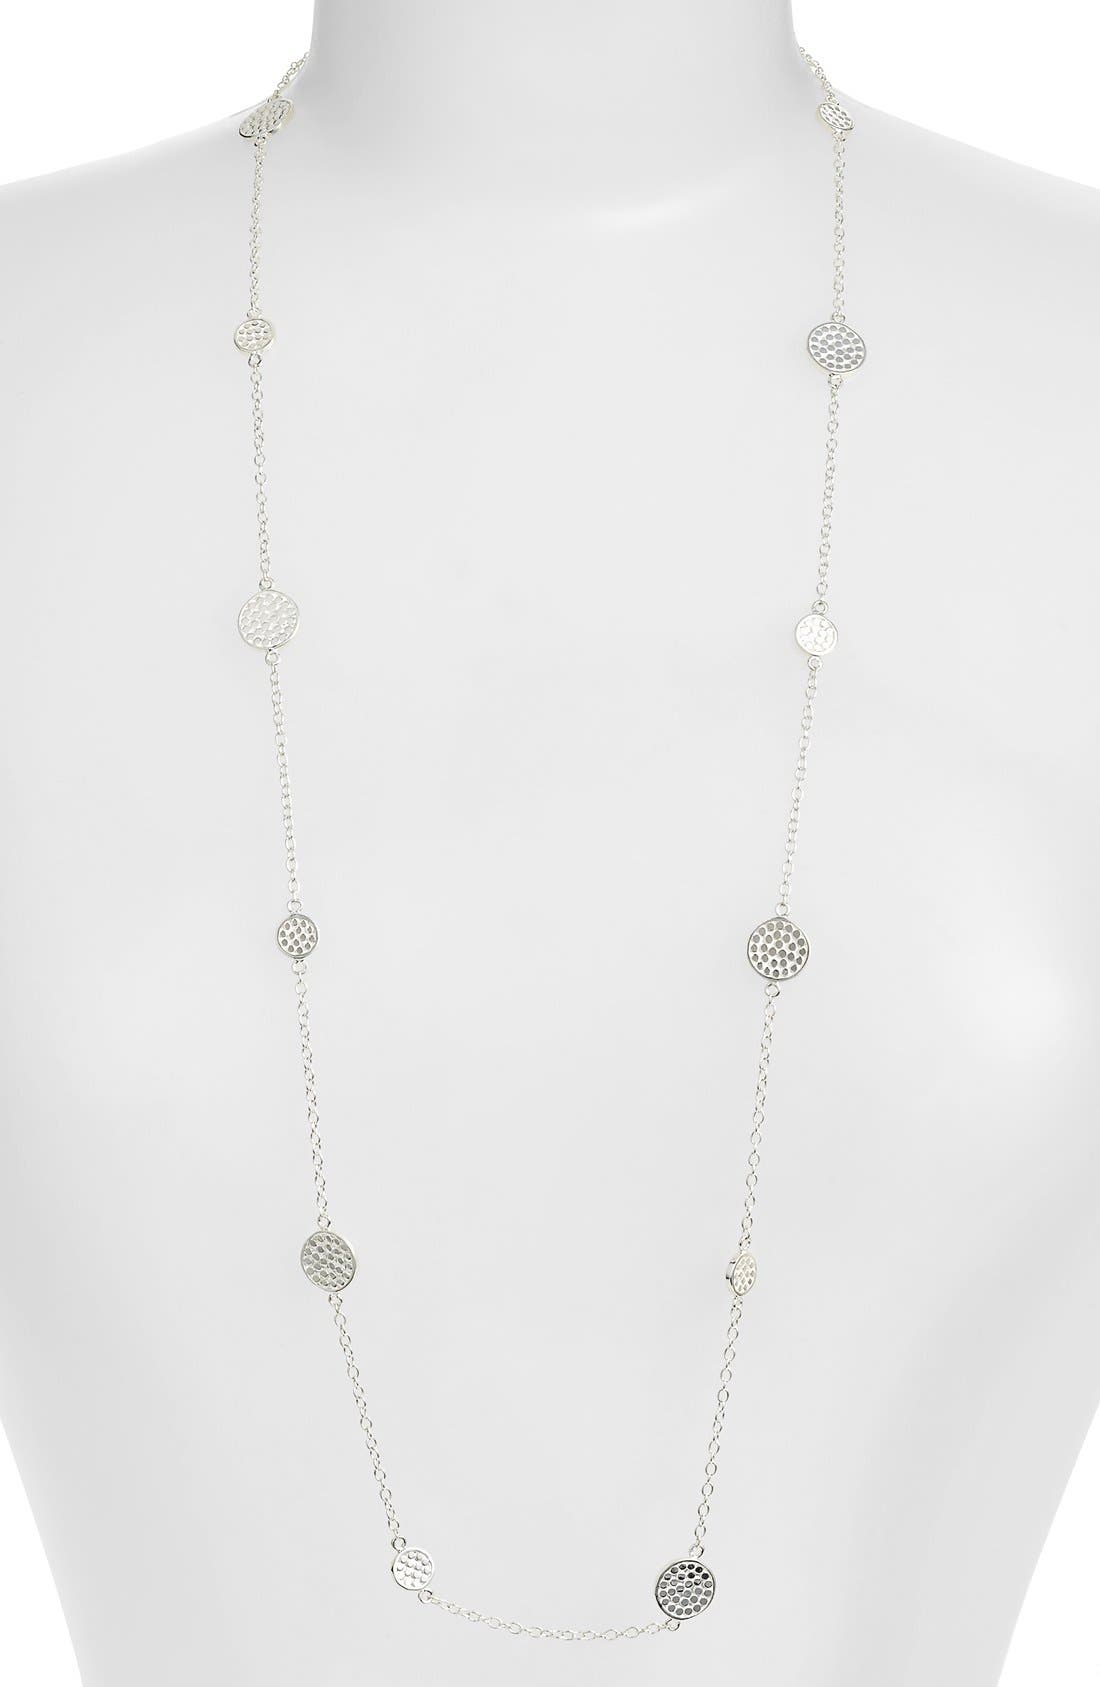 Main Image - Anna Beck 'Gili' Long Station Necklace (Nordstrom Exclusive)